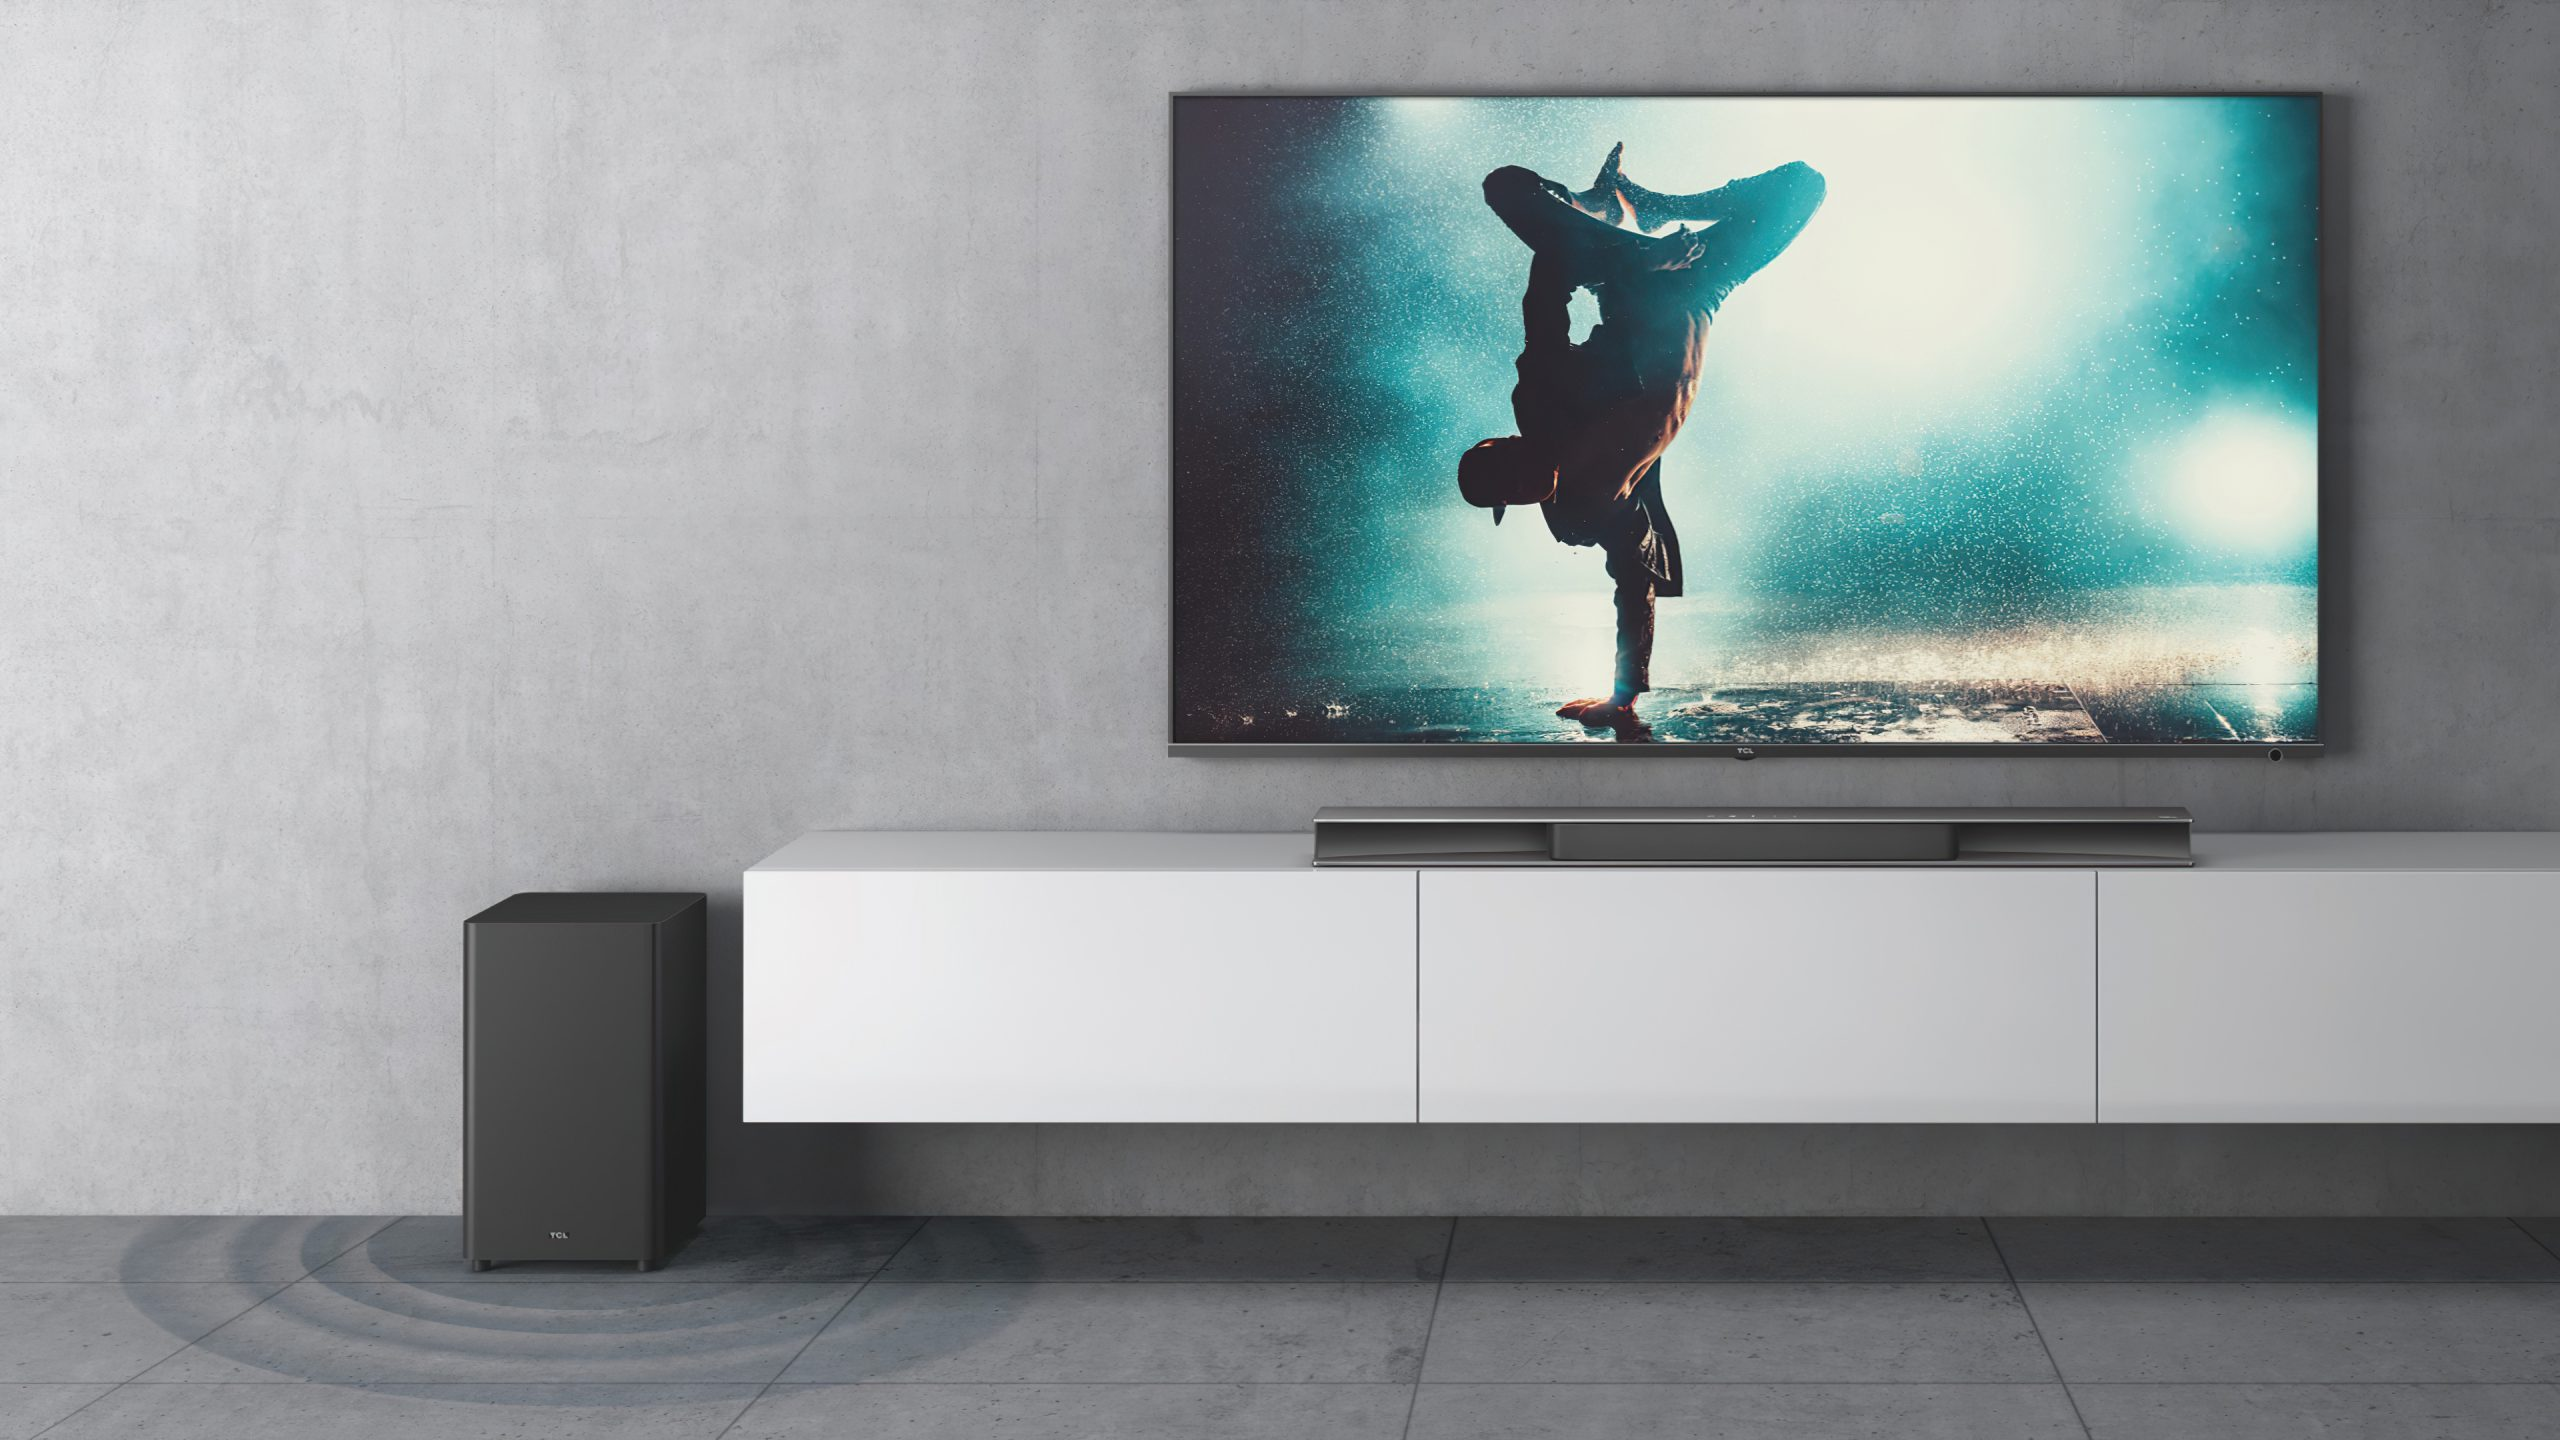 TCL RAY-DANZ TS9030 lifestyle